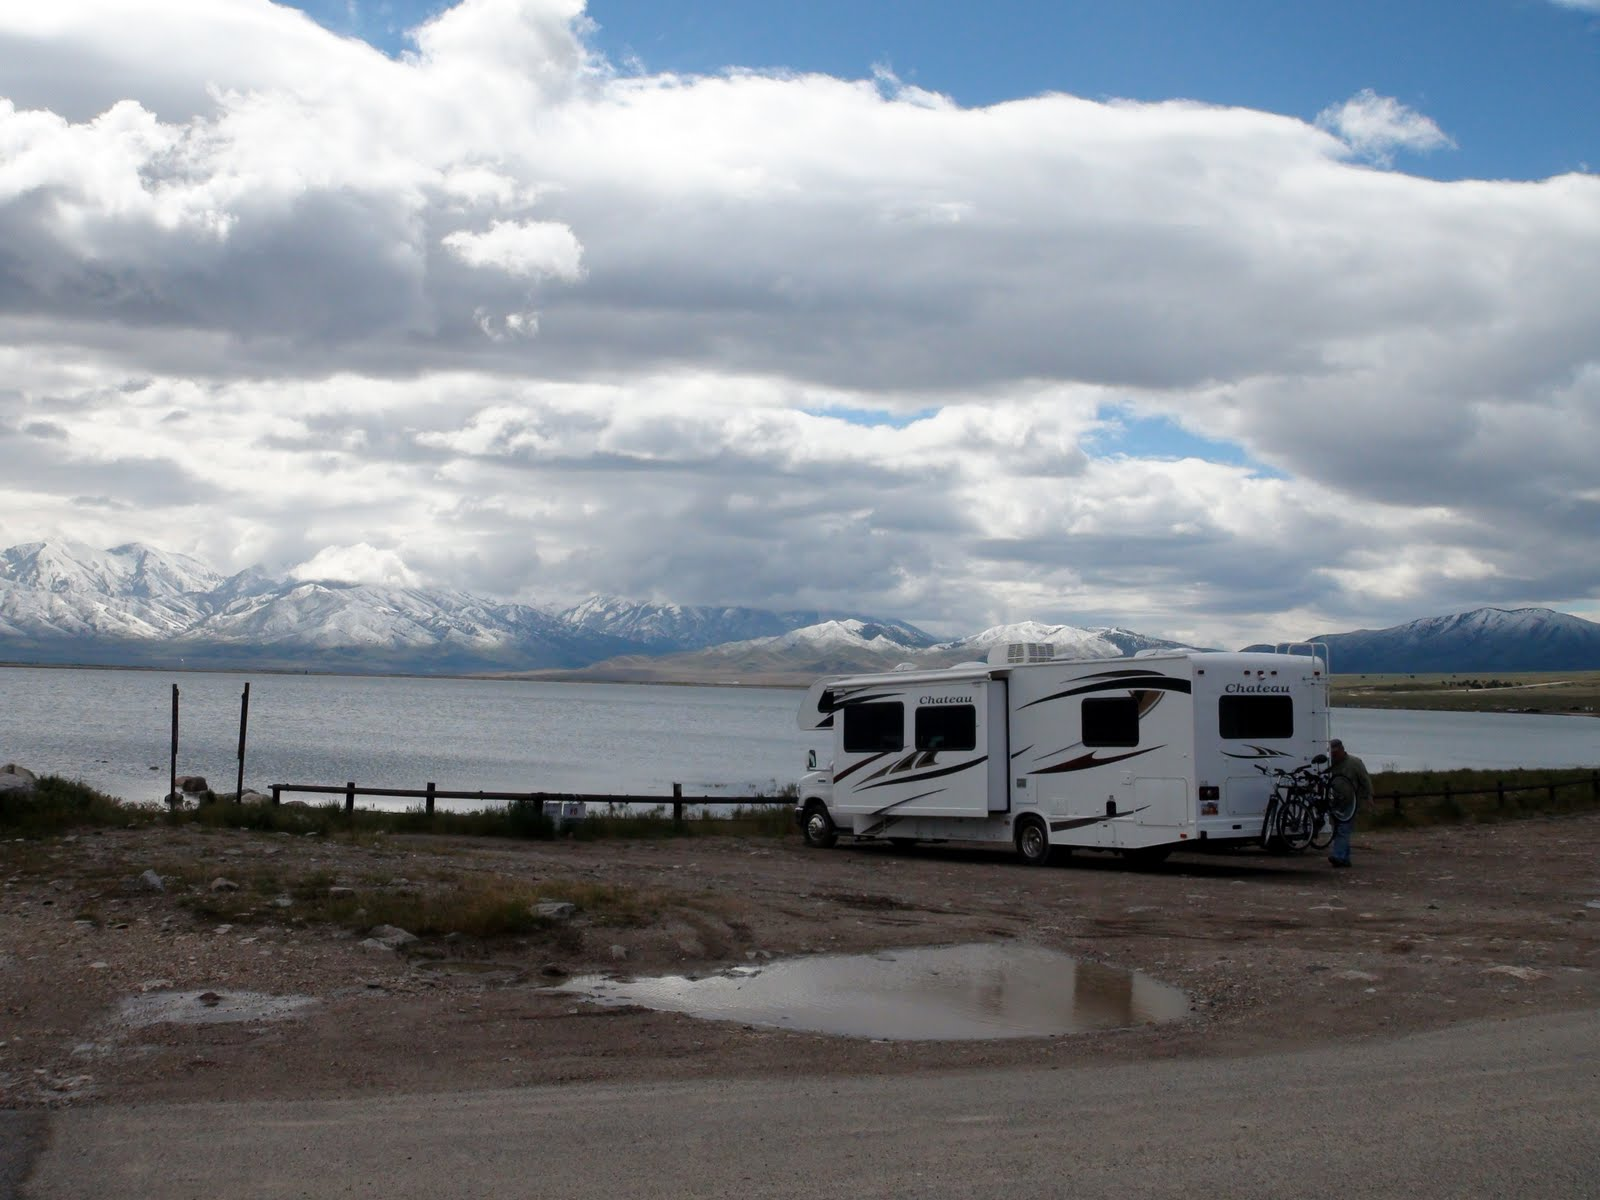 camp host jobs boondocking camping or close to it we had to check out boondocking as even in our day of ever tighter rules and restrictions rvers were saying it s out there and it s good